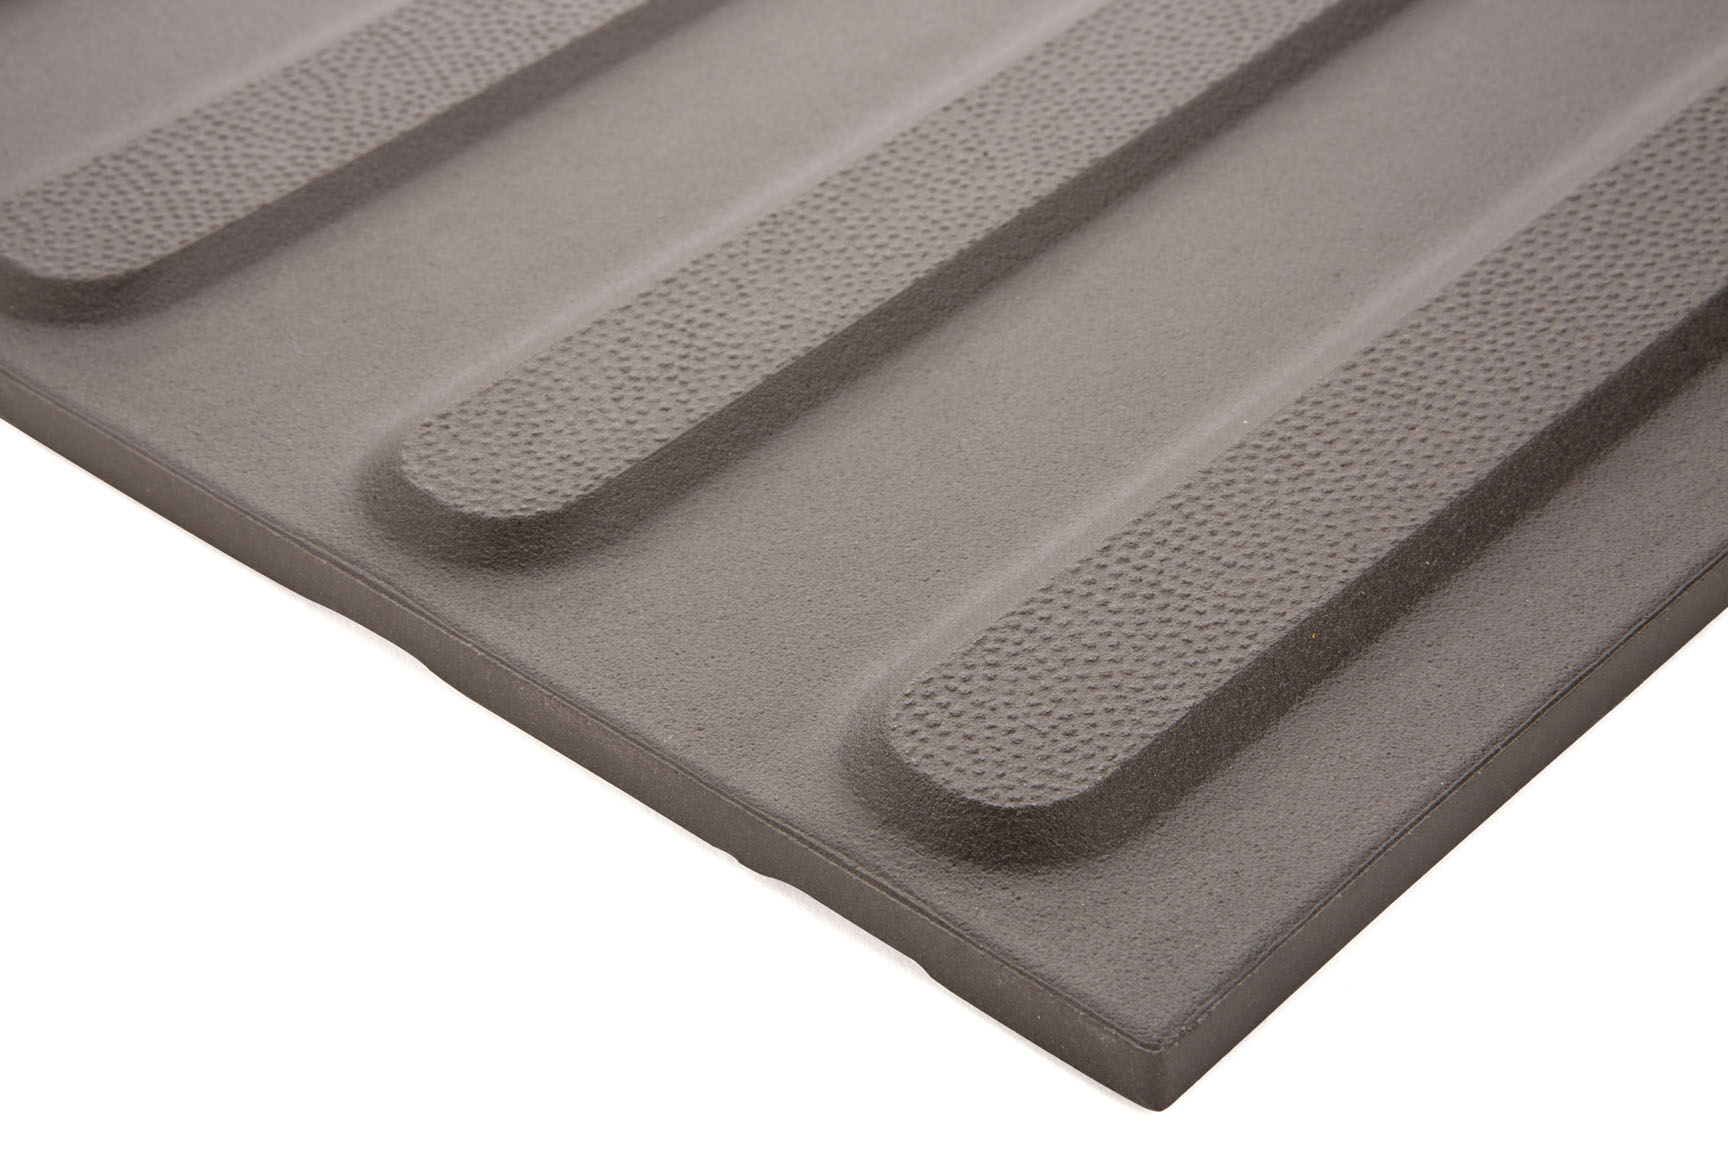 PTGCD300 CERAMIC GREY DIRECTIONAL TACTILE 300X300